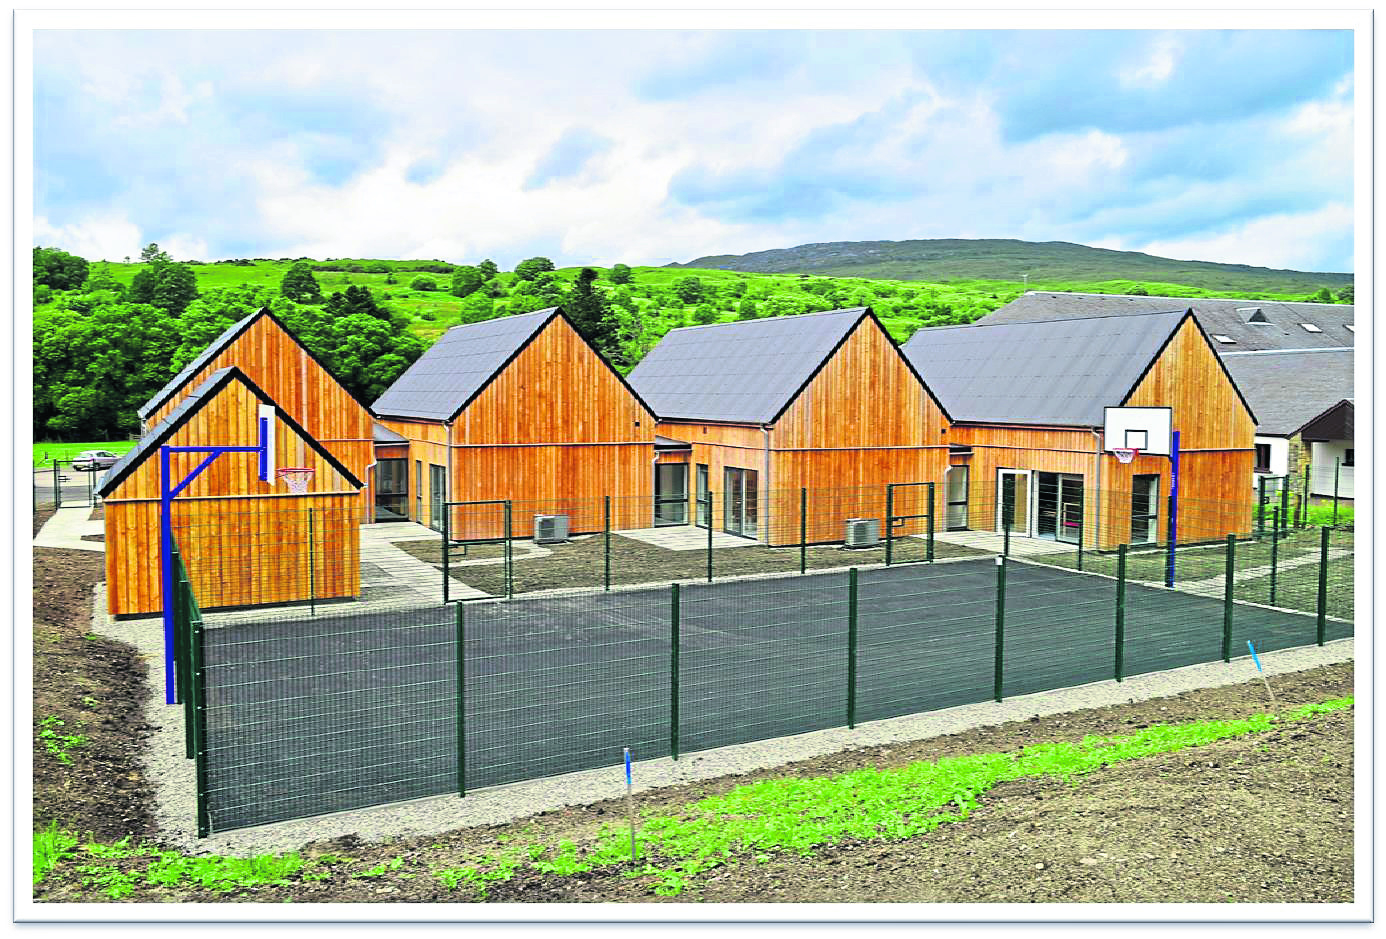 Strontian Primary School only opened its doors in October, but now finds itself without a head teacher.